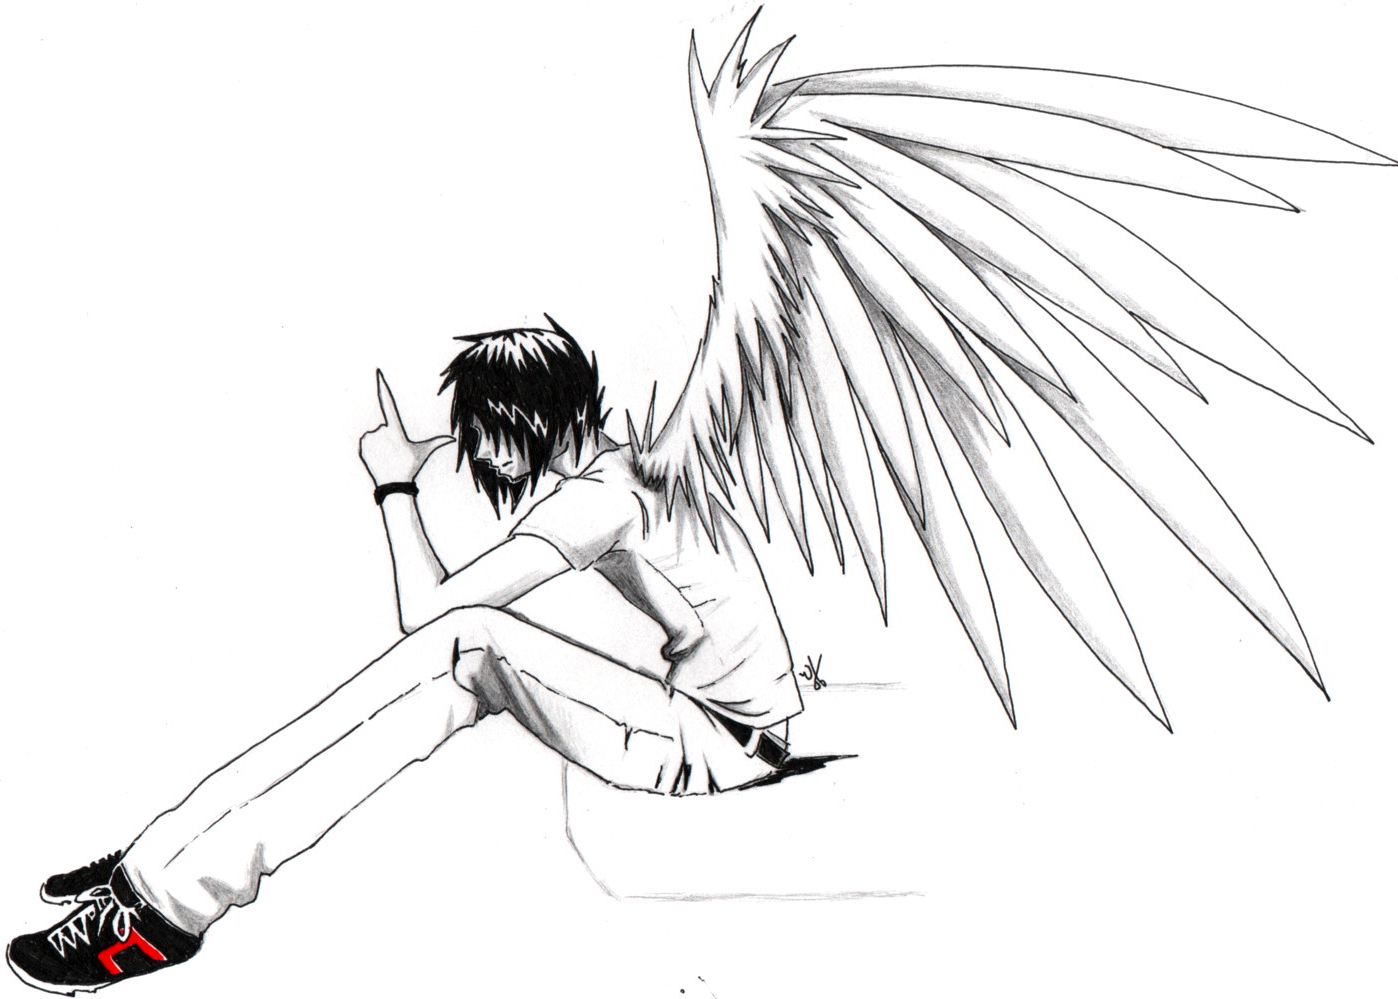 1398x999 Angel Anime Boy Drawings In Pencil Best Cool Pencil Drawings